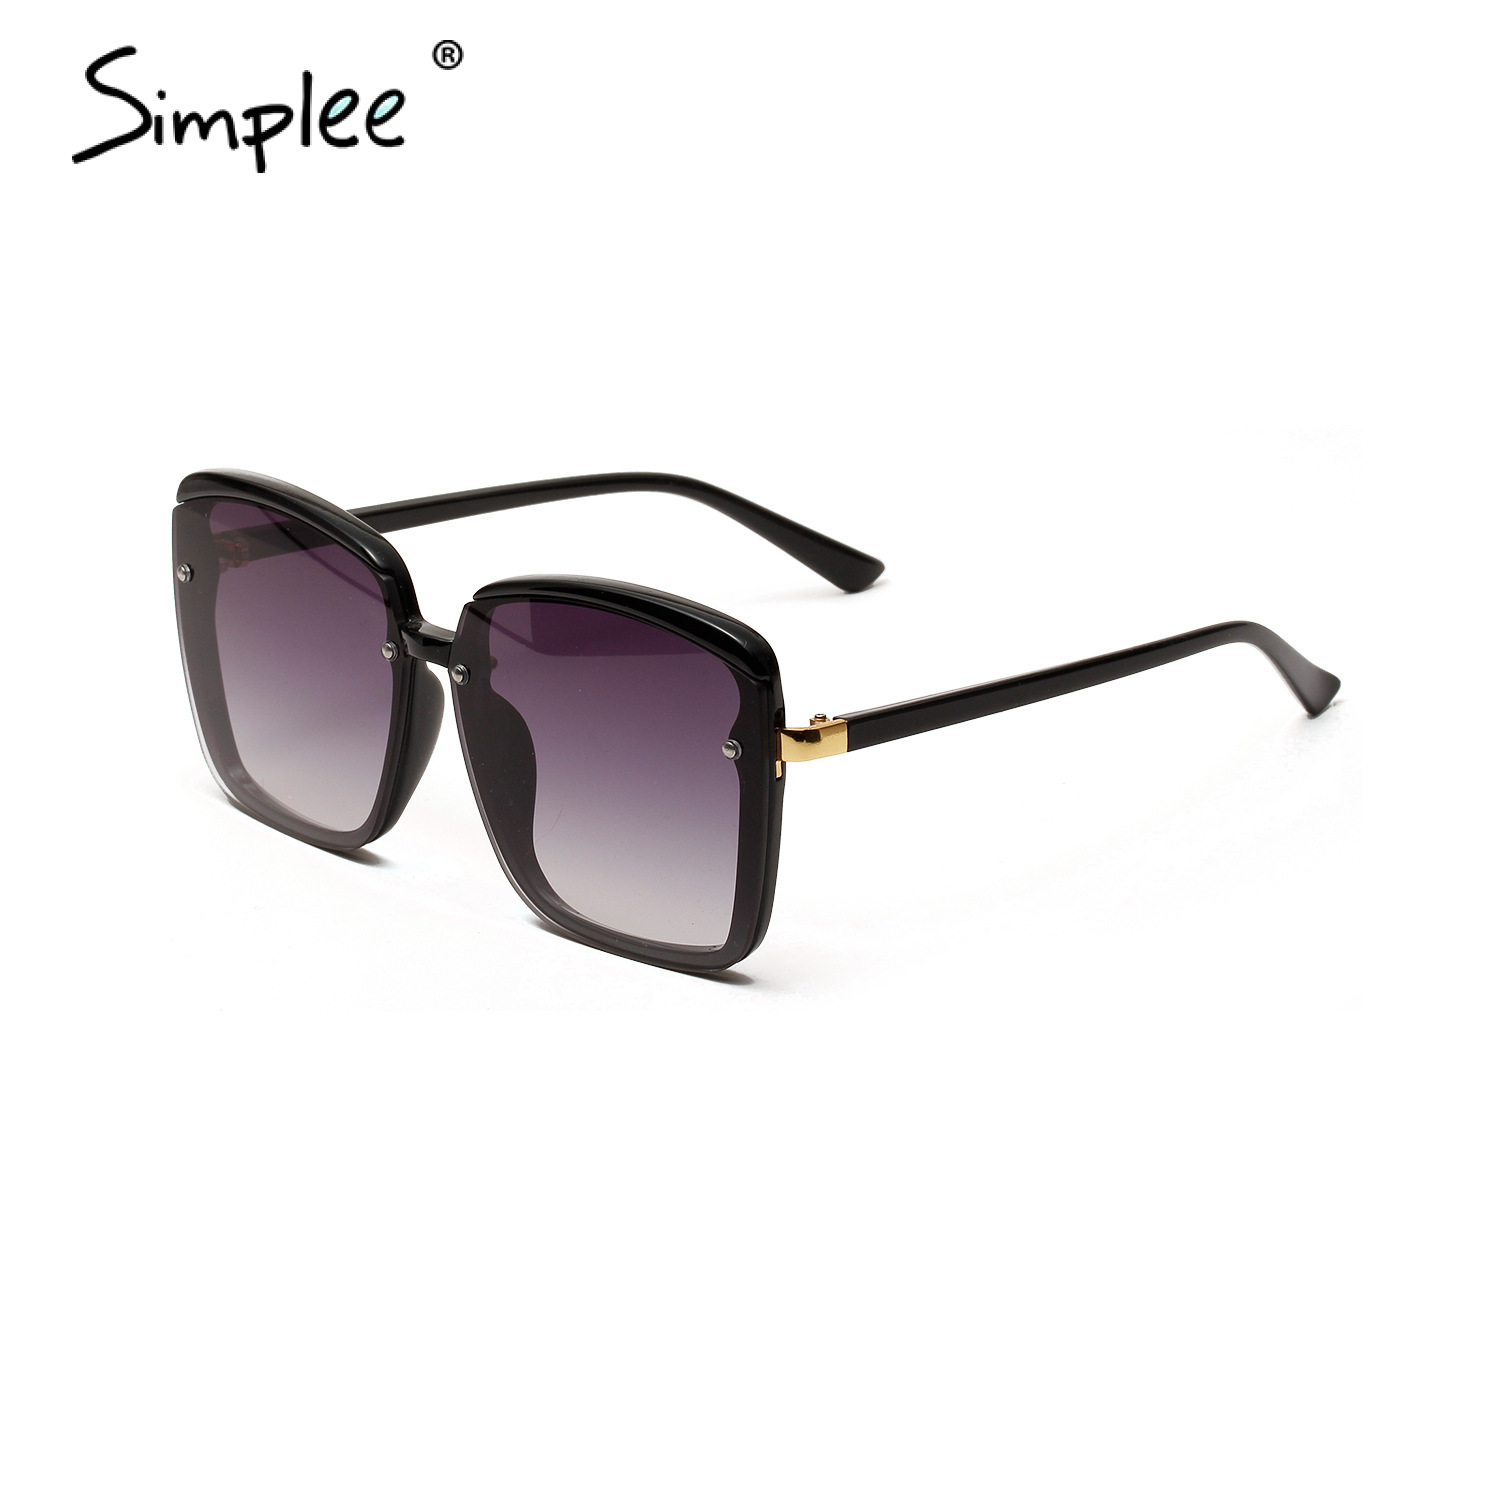 Simplee Chic Summer Sunglasses Women Prescription Glasses Hollow Out Square Gradual Shades Holiday Glasses Causal Beach Glasses